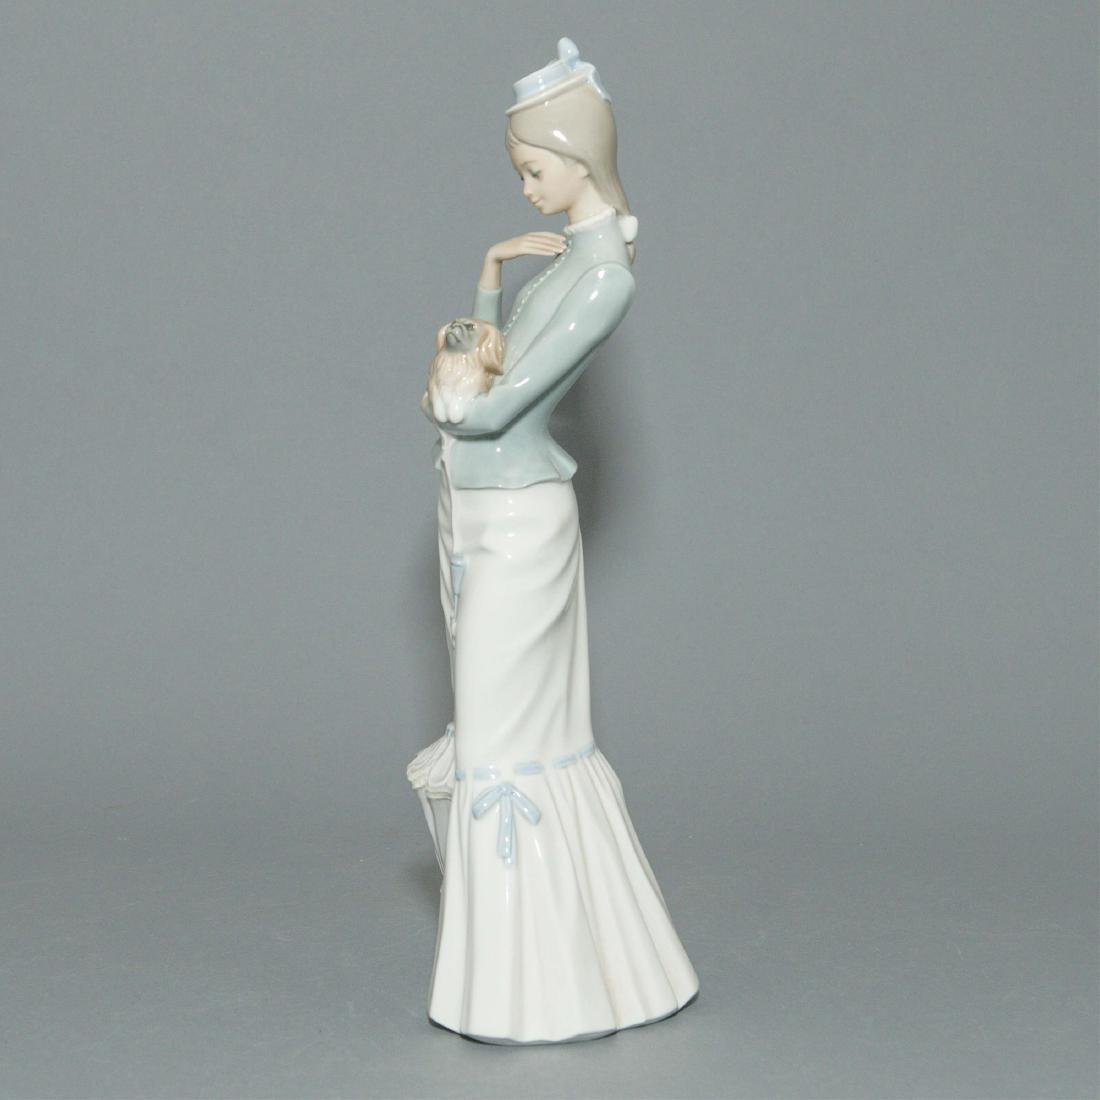 LLADRO WALK WITH THE DOG FIGURINE 4893 - 2